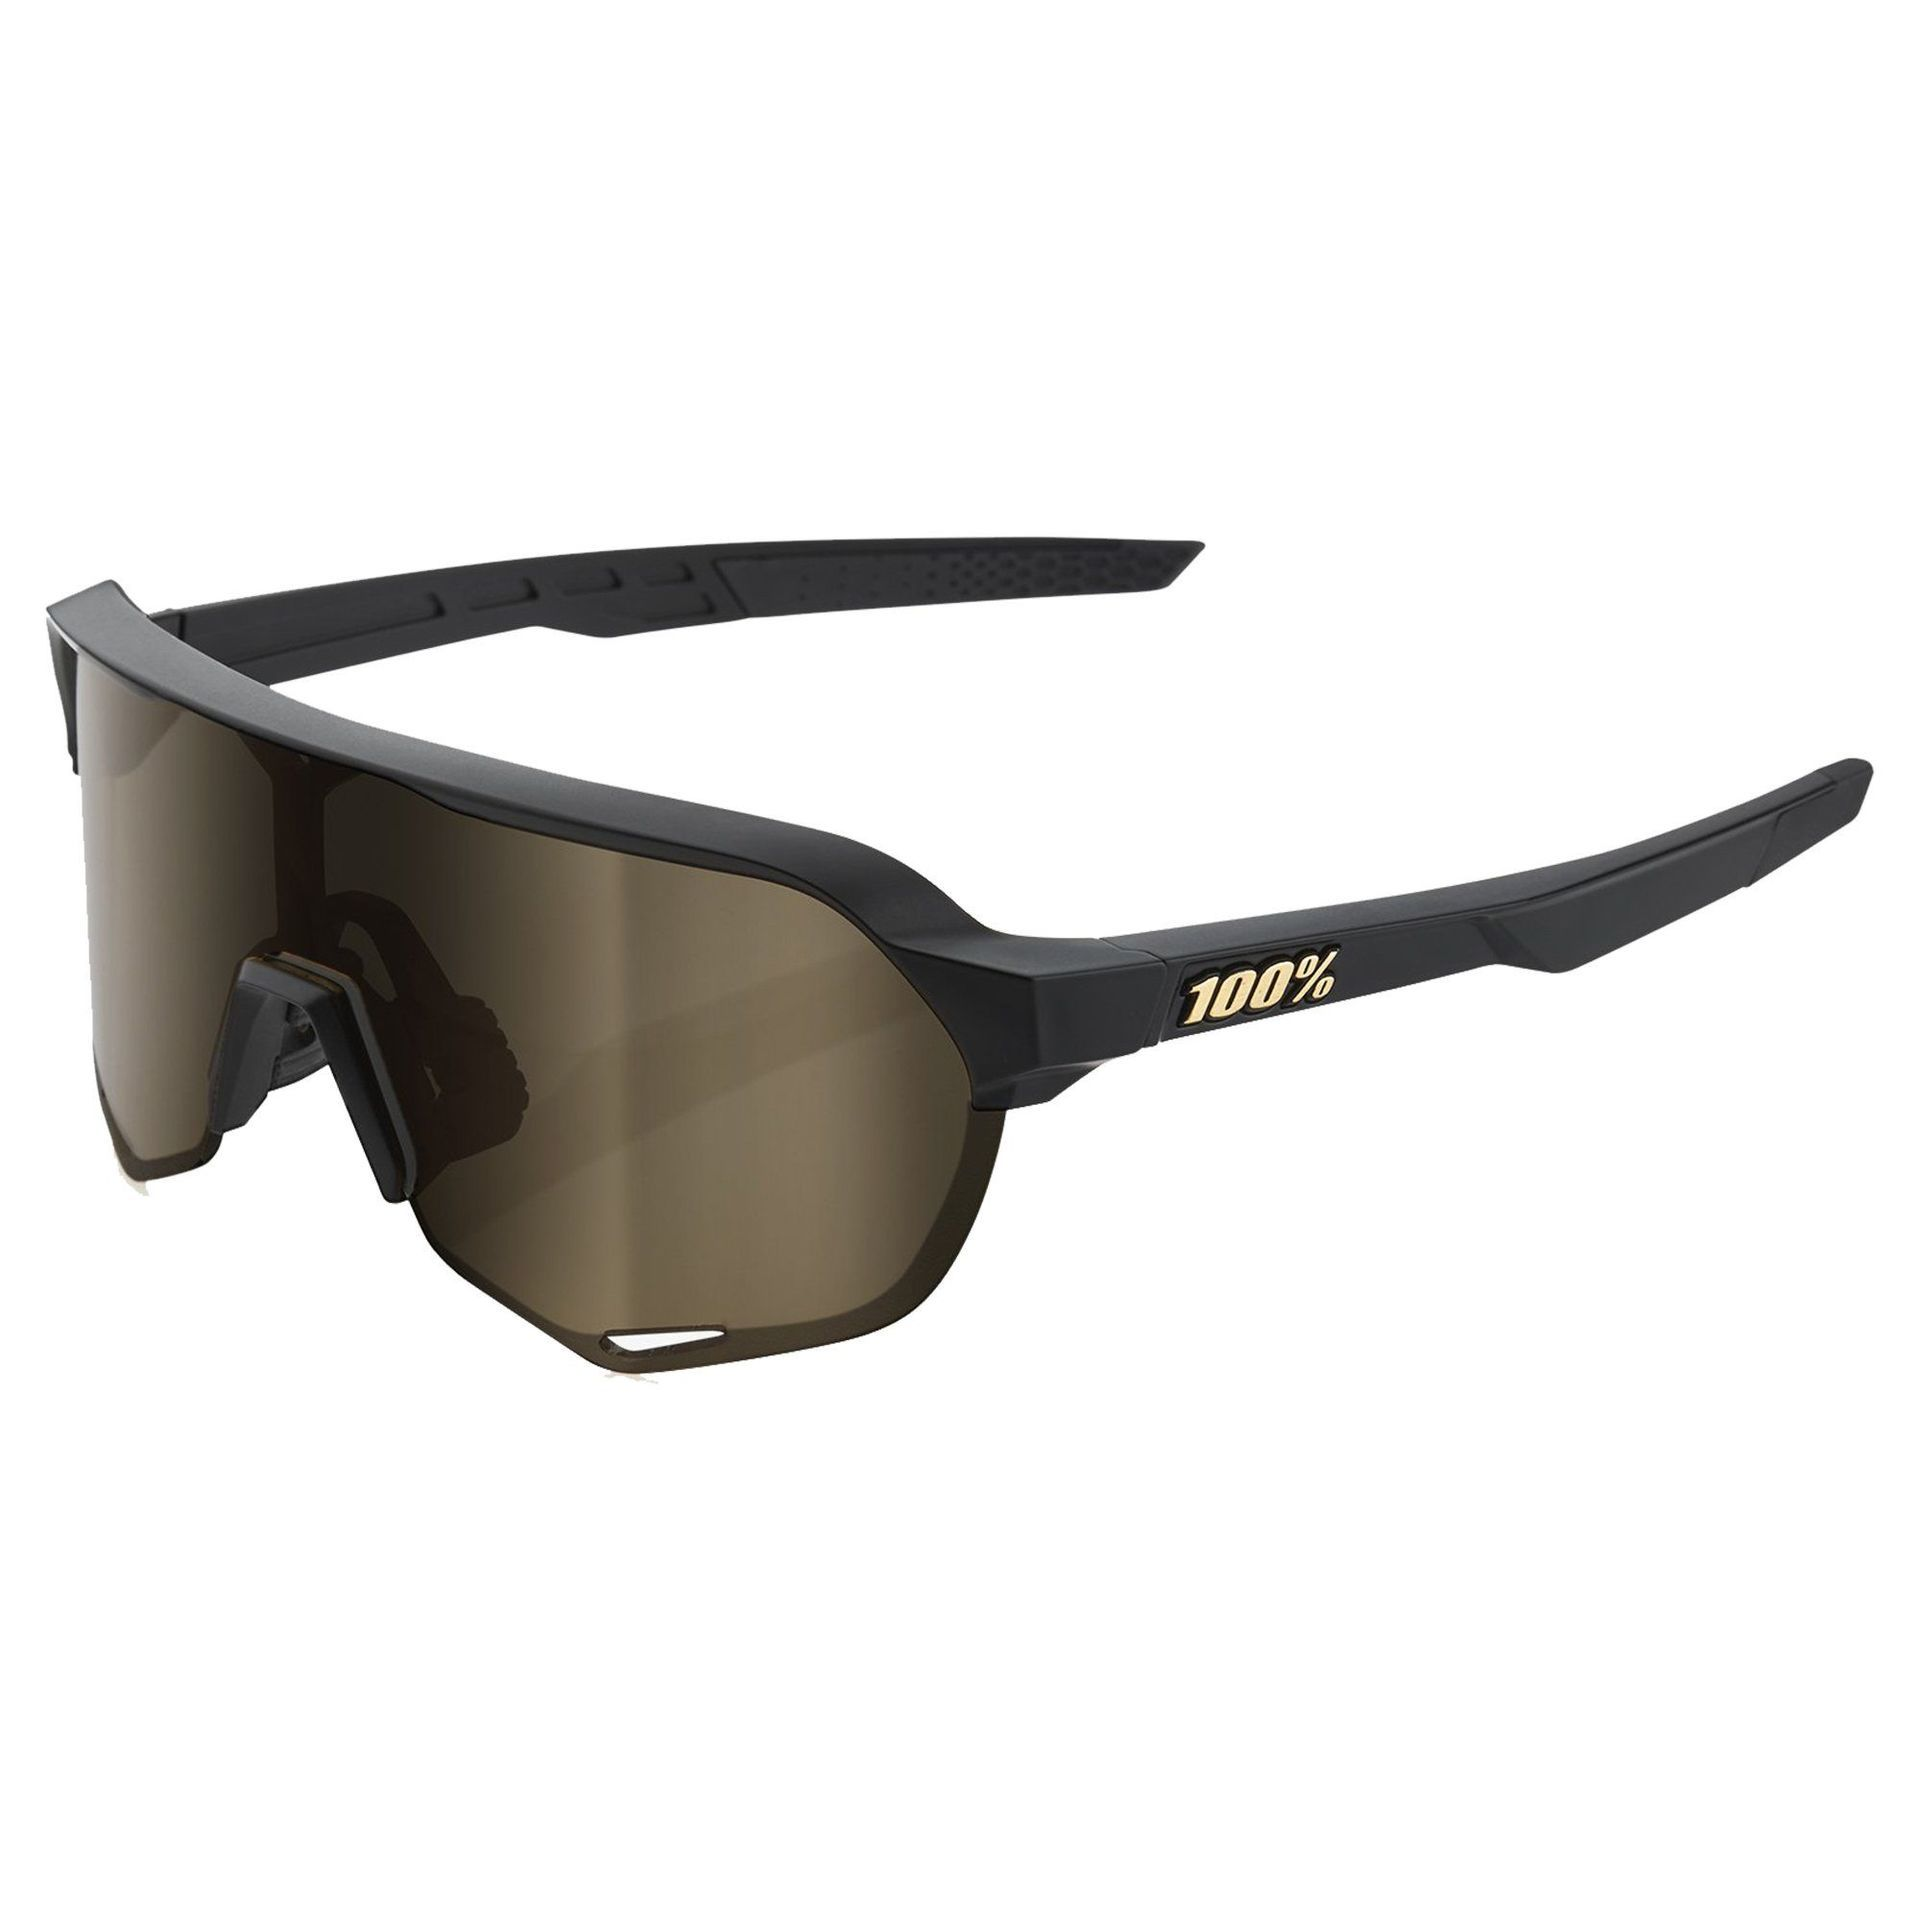 OKULARY 100% S2 MATTE BLACK|SOFT GOLD 1